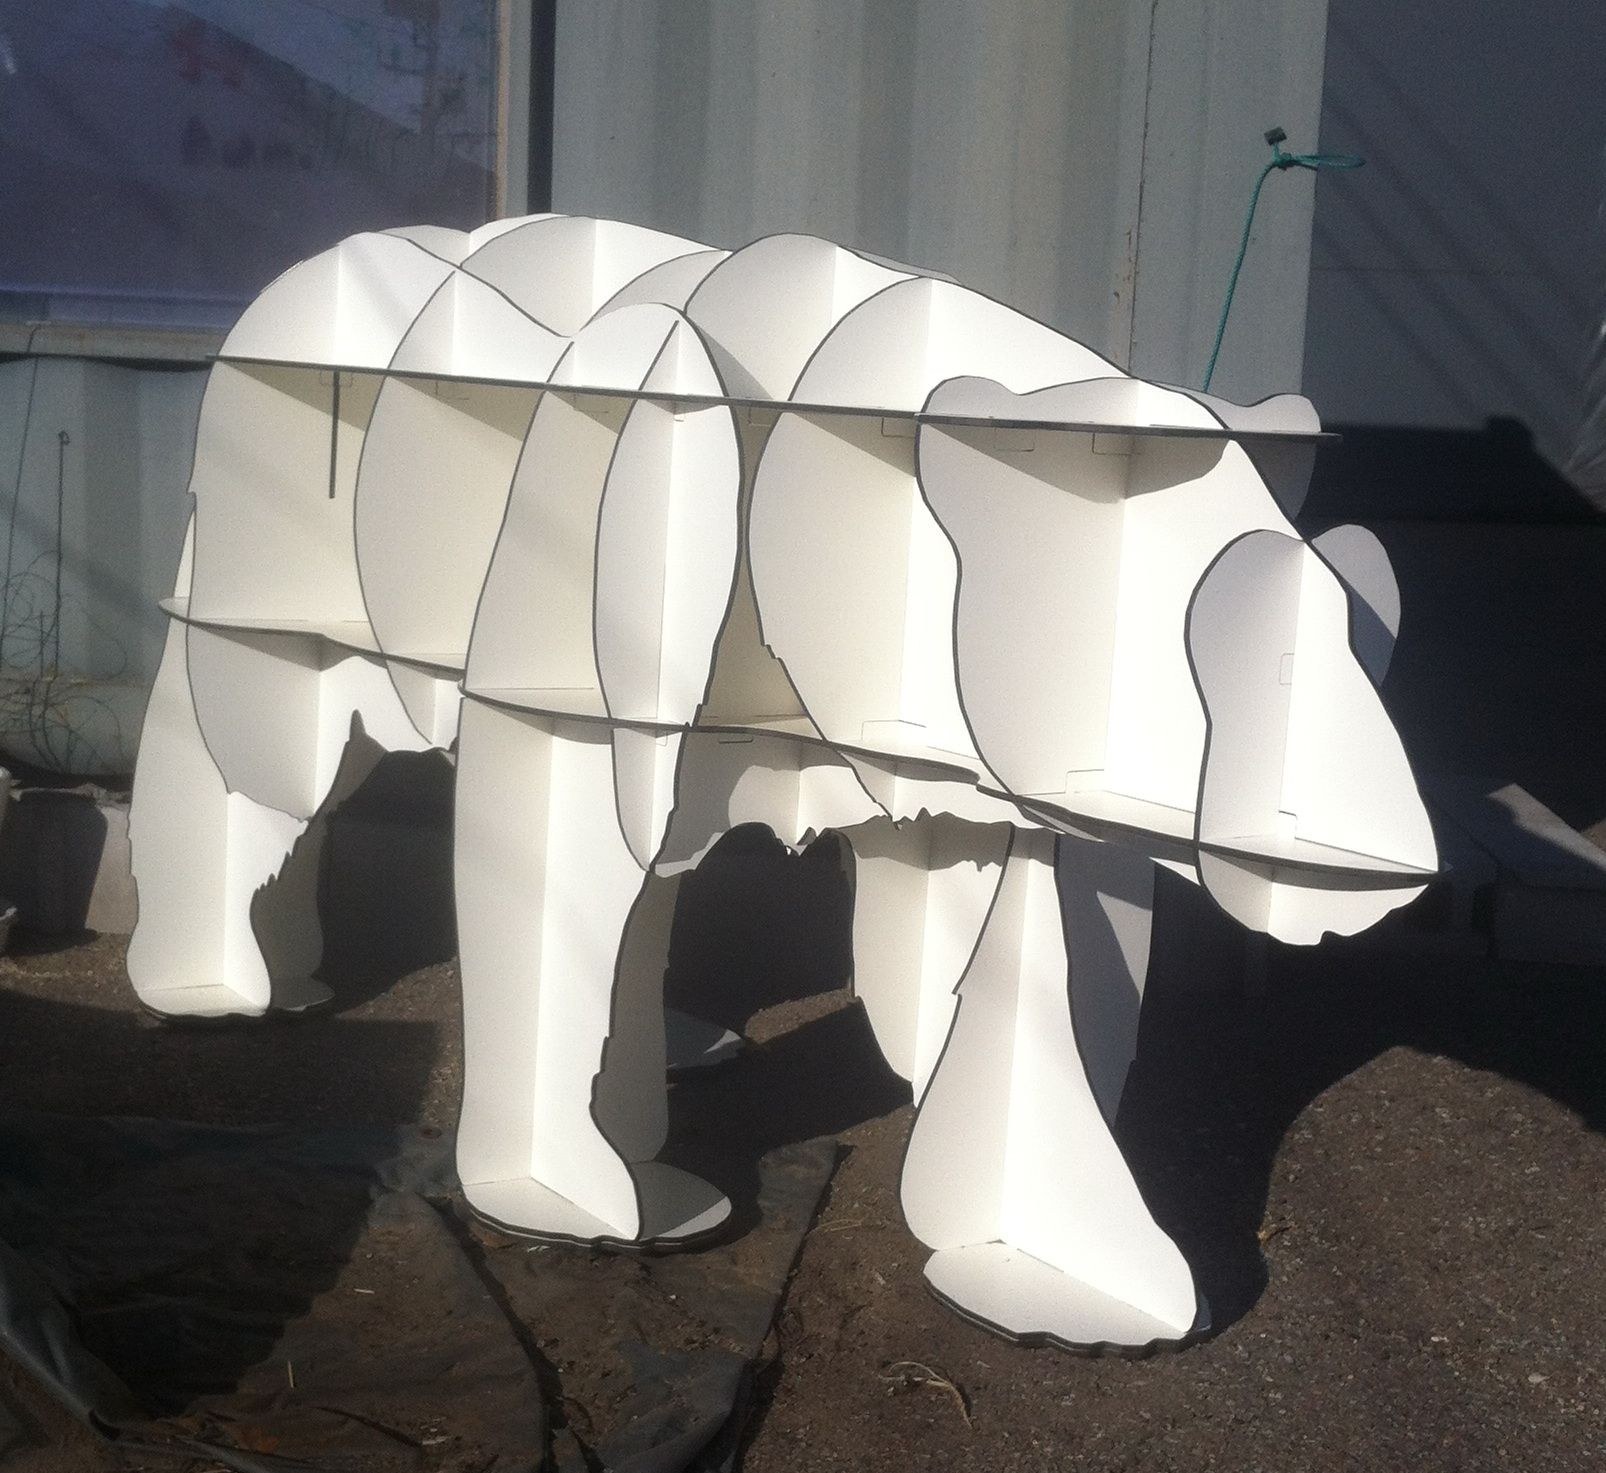 BEAR  / CNC ROUTER / 3D DESIGN /  유창석www.joinxstudio.com